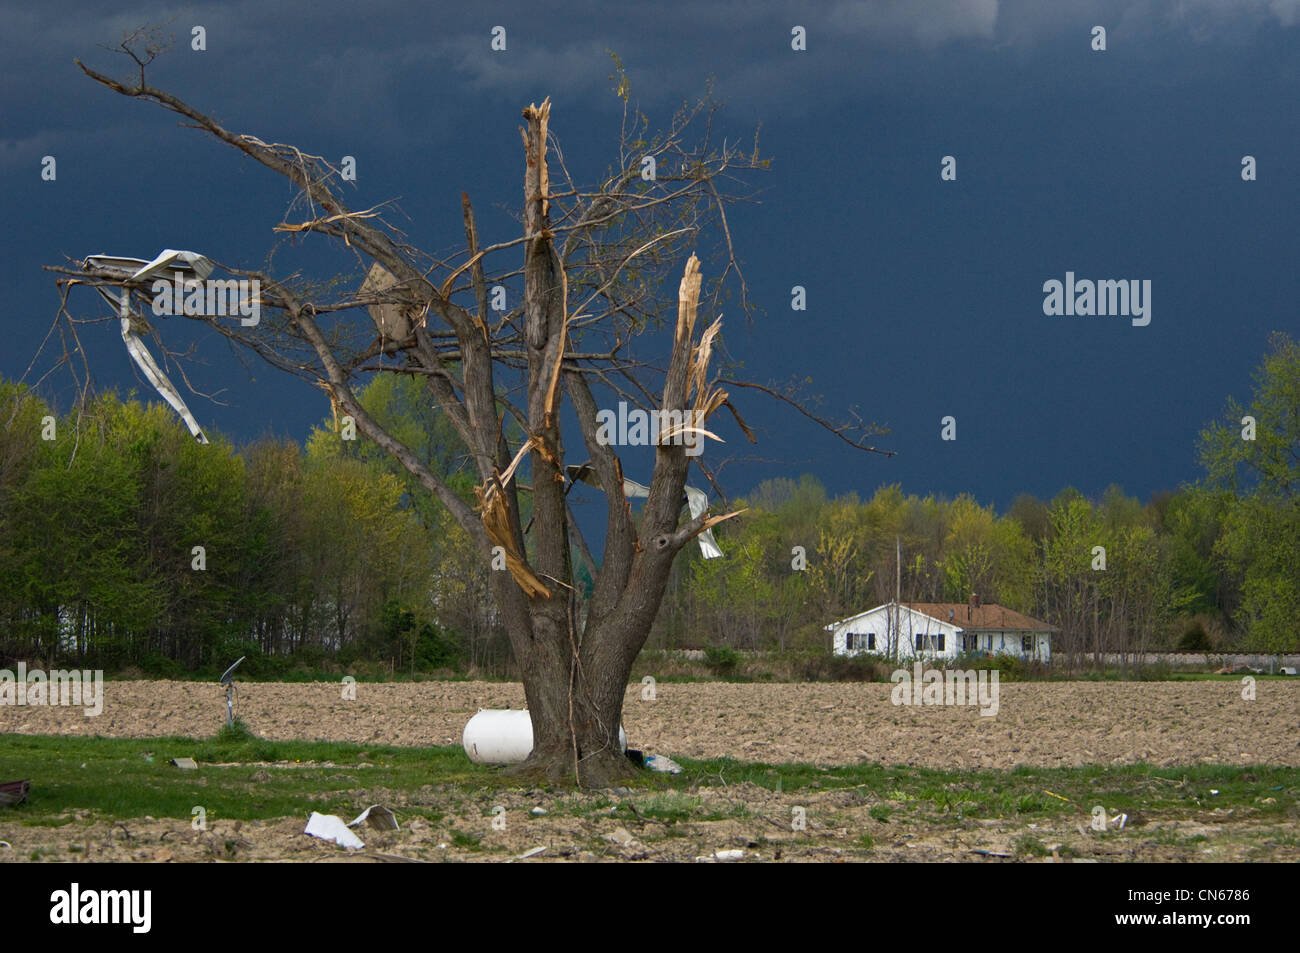 Storm Clouds over Damaged Tree with Debris in Branches from March 2 Tornado in Holton, Indiana - Stock Image